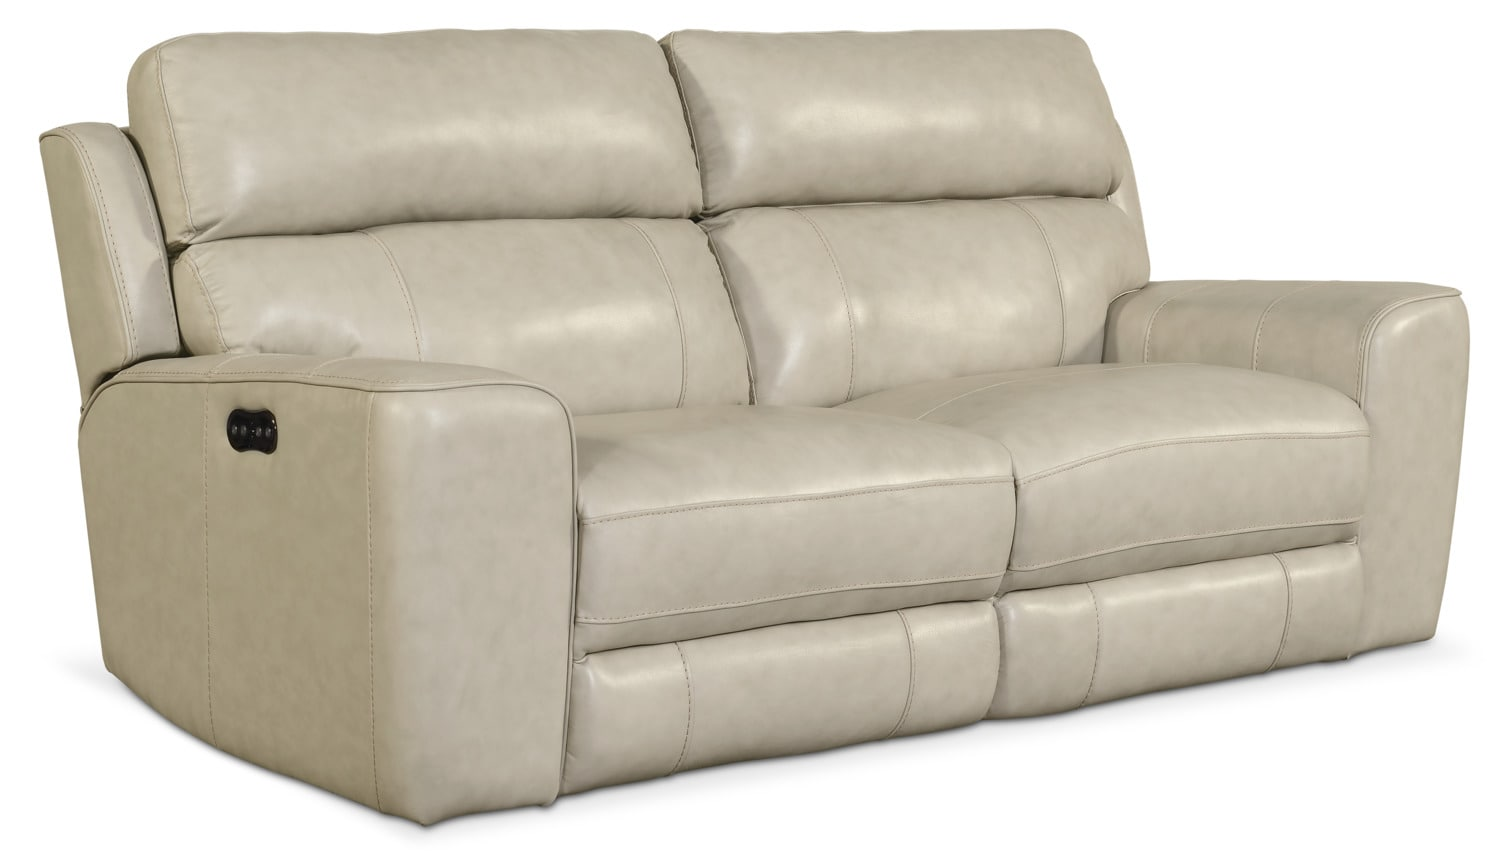 Newport Sofa in addition 1018396P besides Cindy Crawford Home Bellingham Hydra 2 Pc Living Room 8819690p furthermore Pull Out Couches together with N 8f6. on cindy crawford home newport cove slate sofa